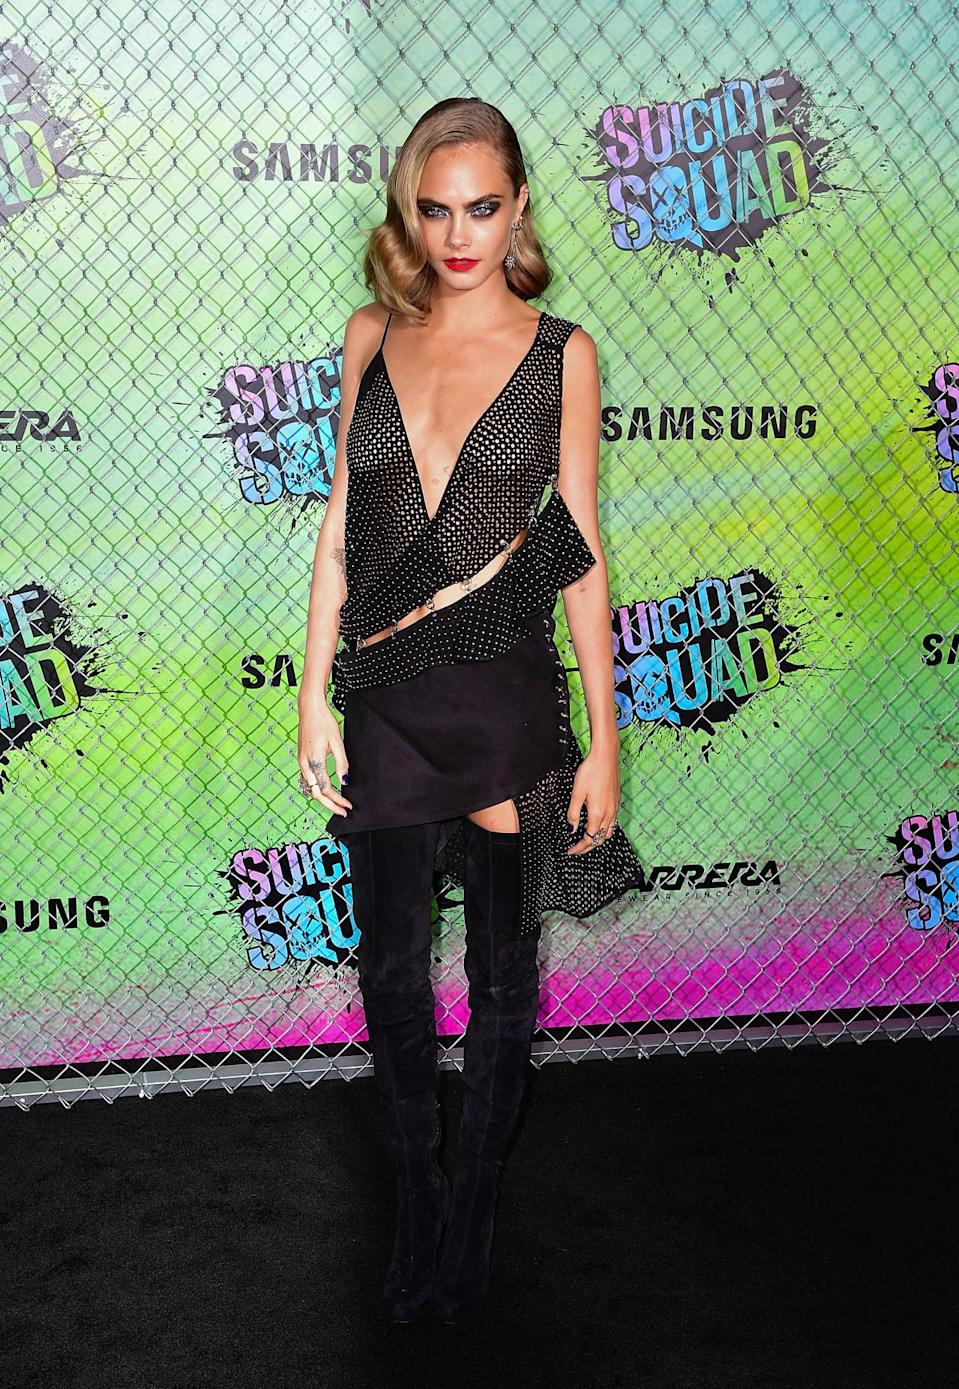 Cara Delevingnes Suicide Squad Role Forcing Her To See A